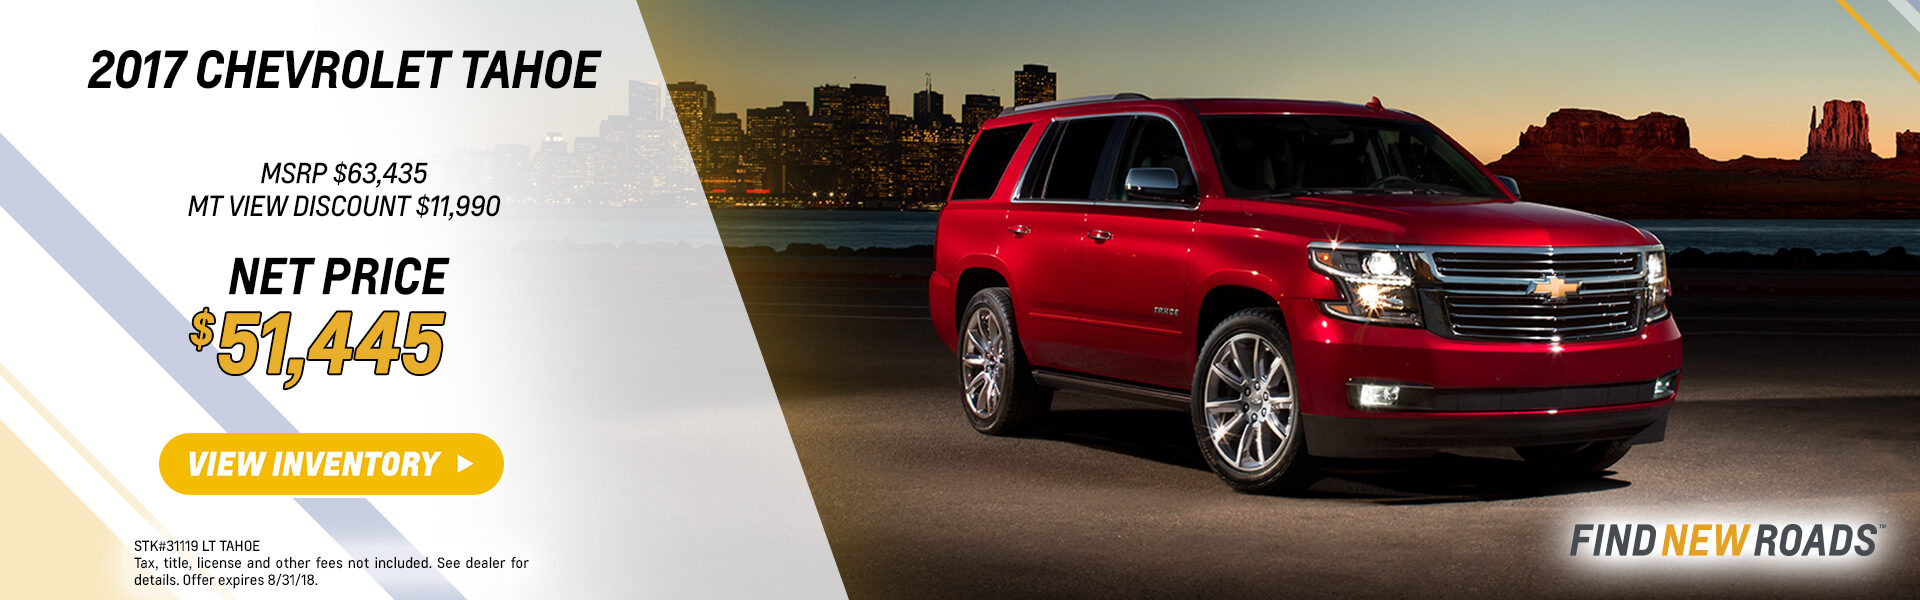 2018 Chevy Tahoe 10% Off